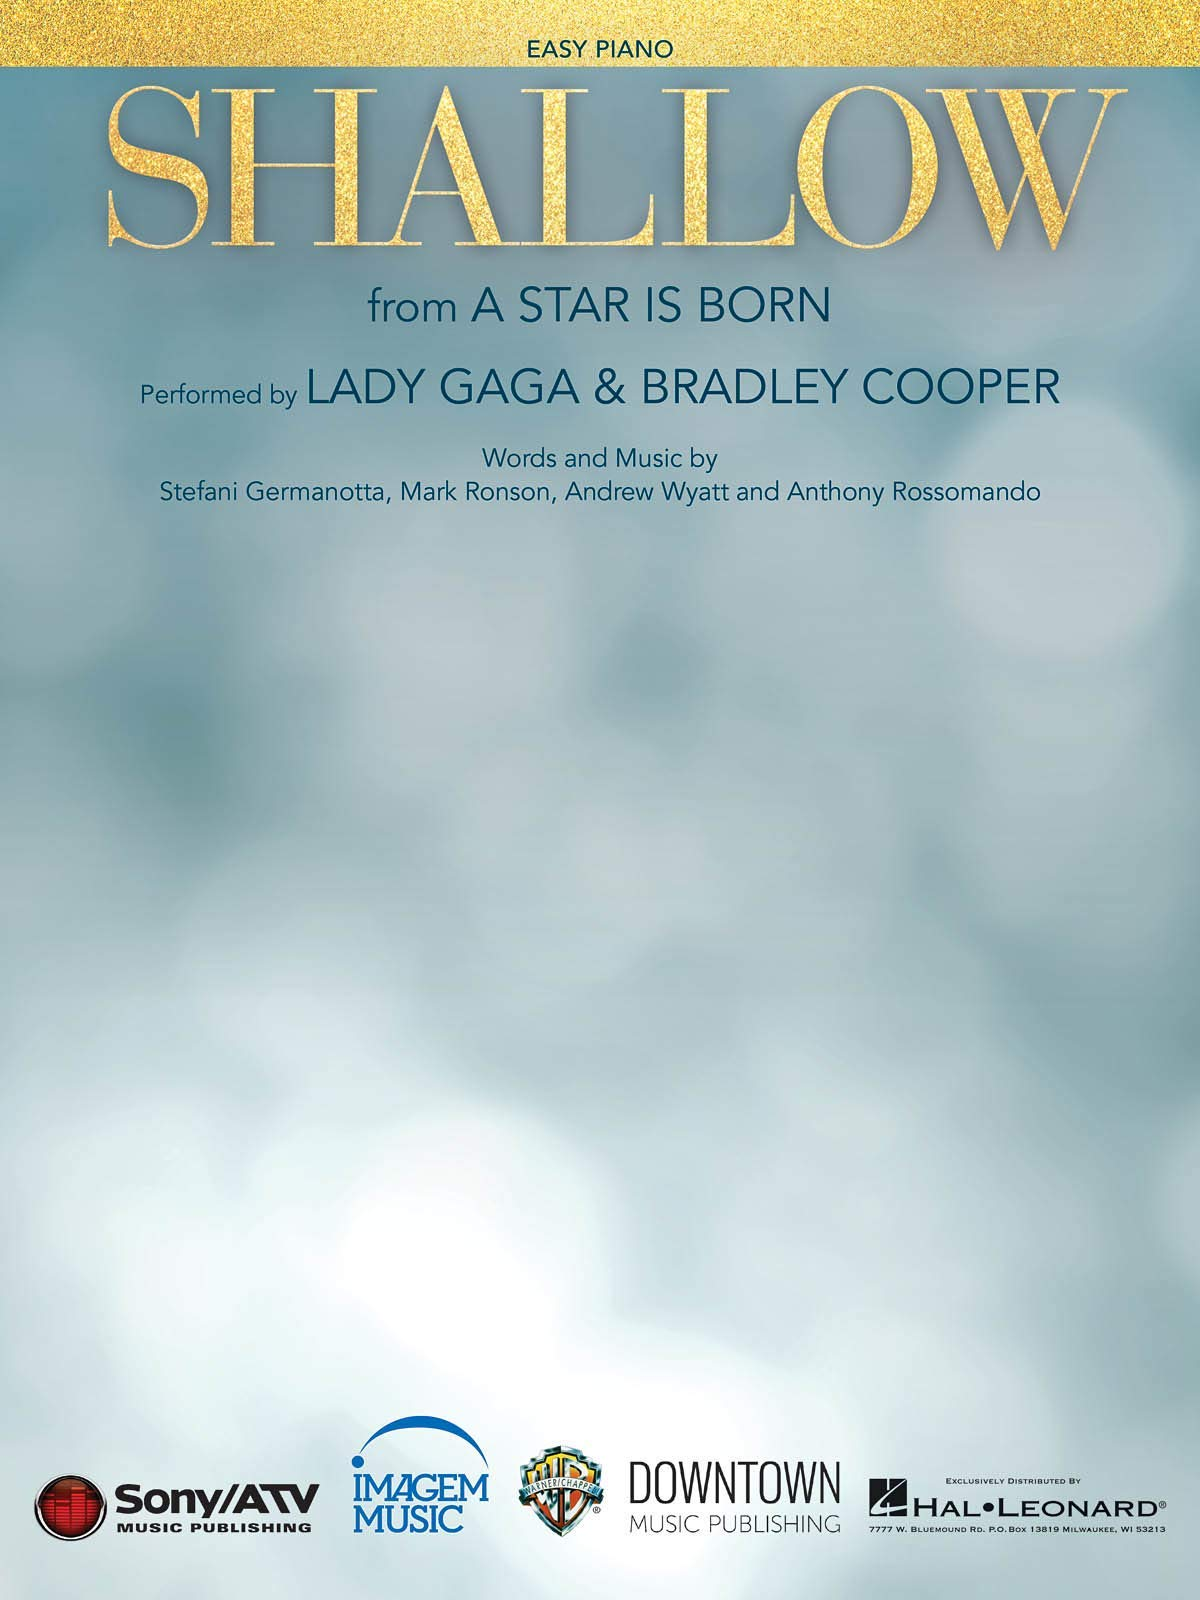 Lady Gaga - Shallow (from A Star Is Born) - EASY PIANO Sheet Music Single